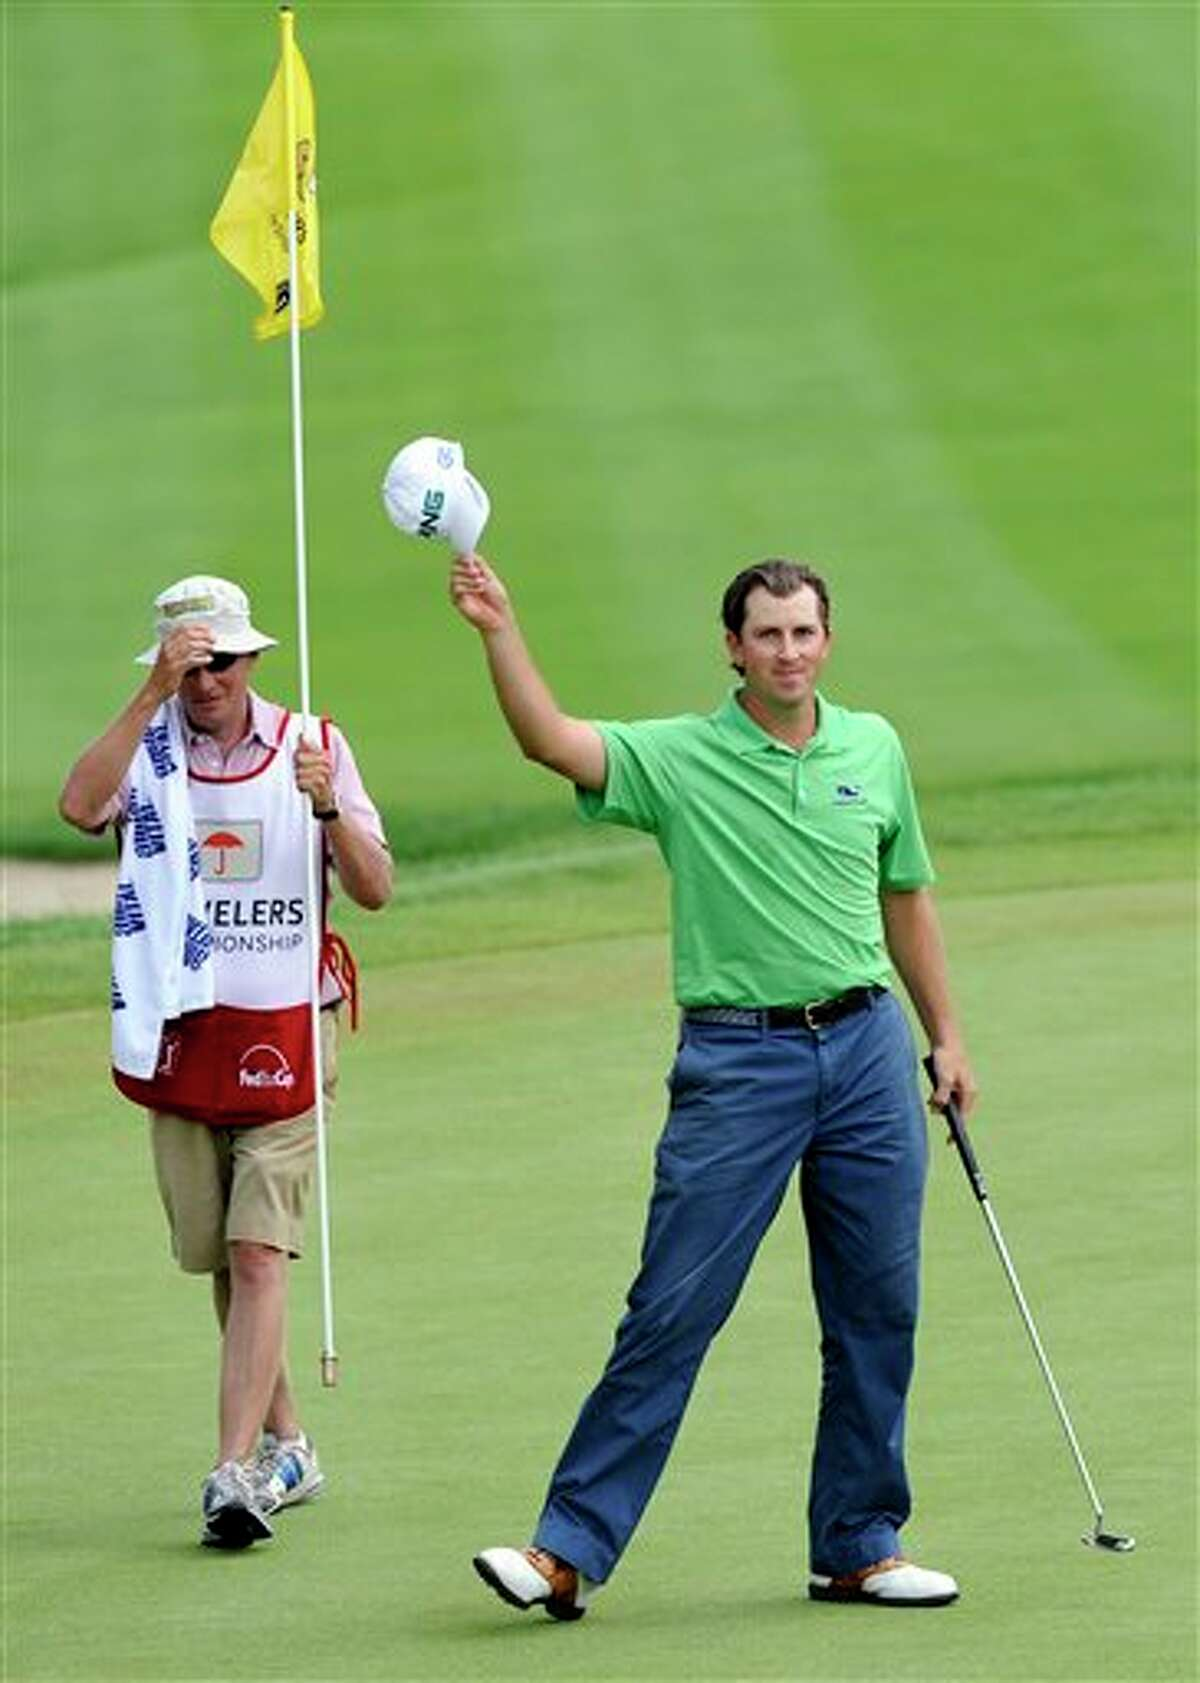 Michael Thompson, right, acknowledges the gallery after making a birdie on the 18th hole during the final round of the Travelers Championship golf tournament in Cromwell, Conn., on Sunday, June 26, 2011. Thompson finsihed the final round with an 18-under par 262. (AP Photo/Fred Beckham)